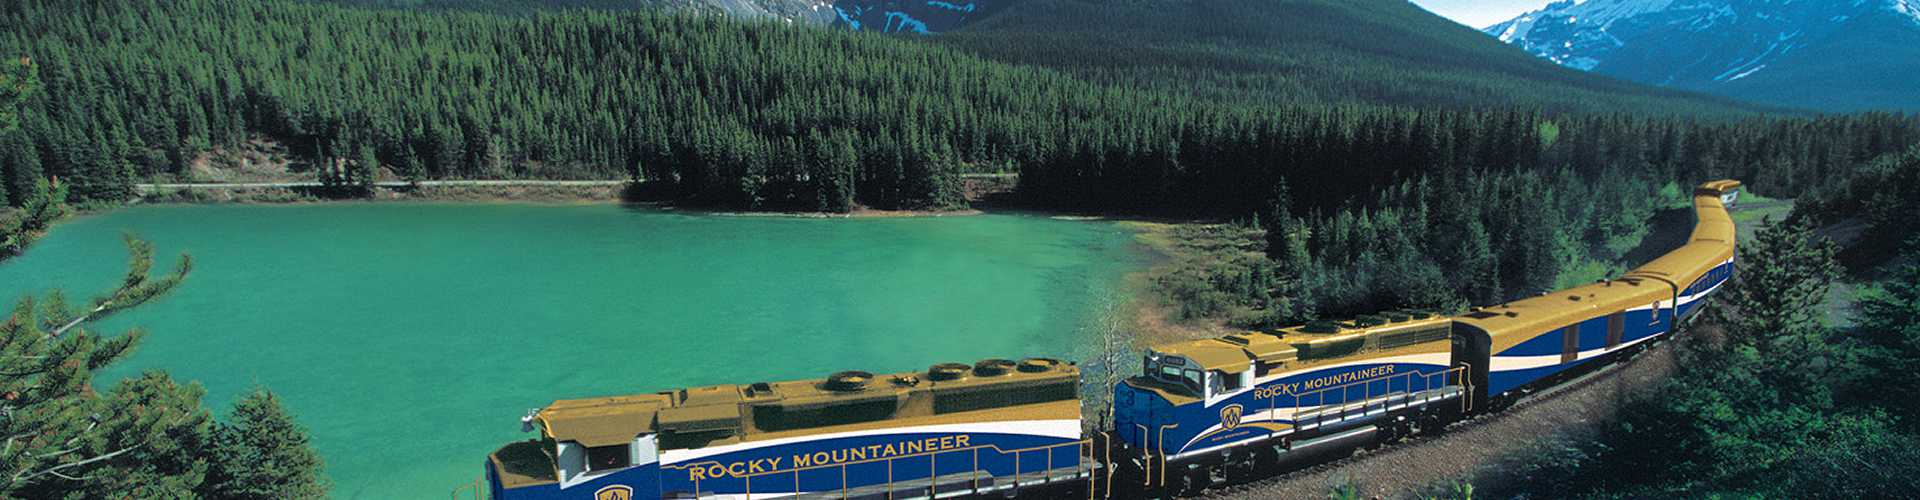 Rocky Mountaineer, Kanada